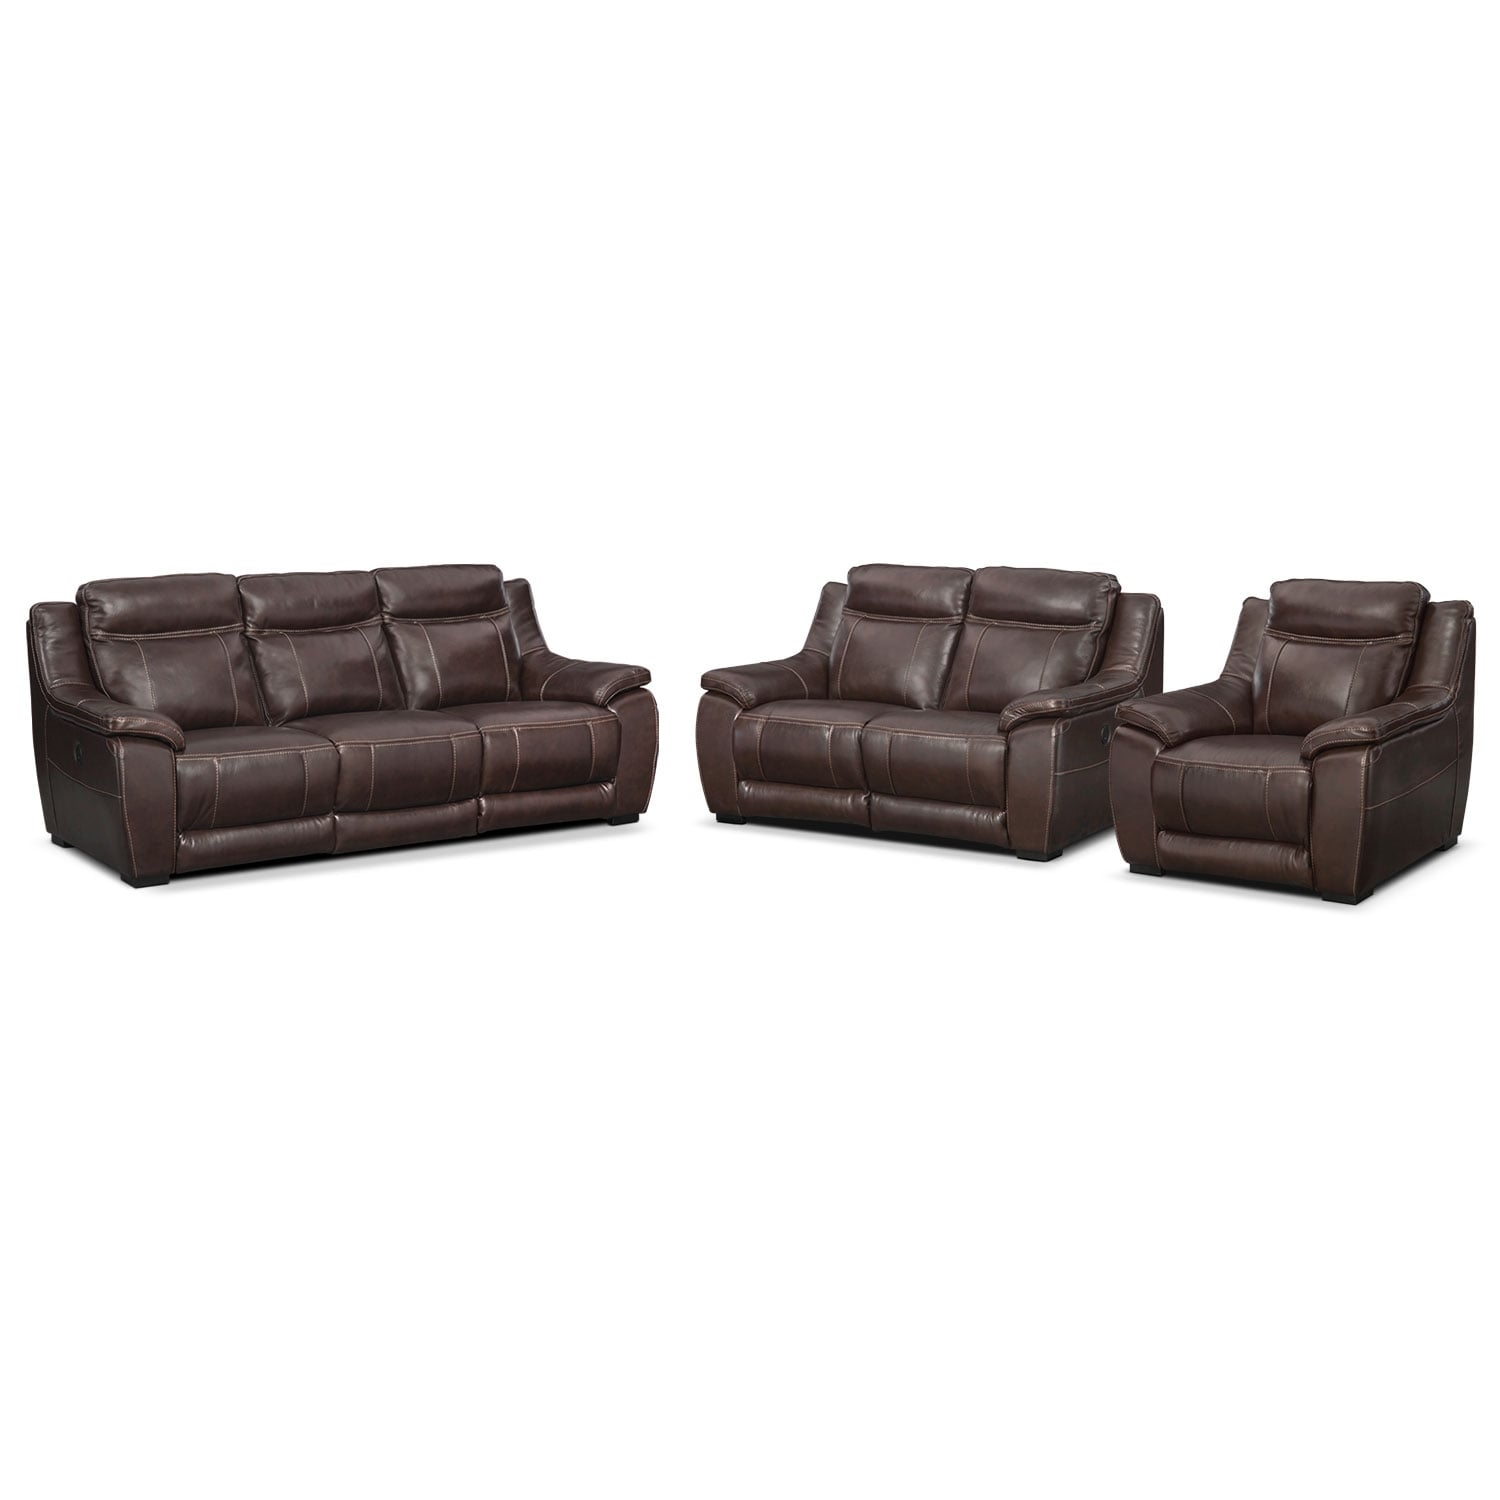 Lido Power Reclining Sofa, Reclining Loveseat and Recliner Set - Brown